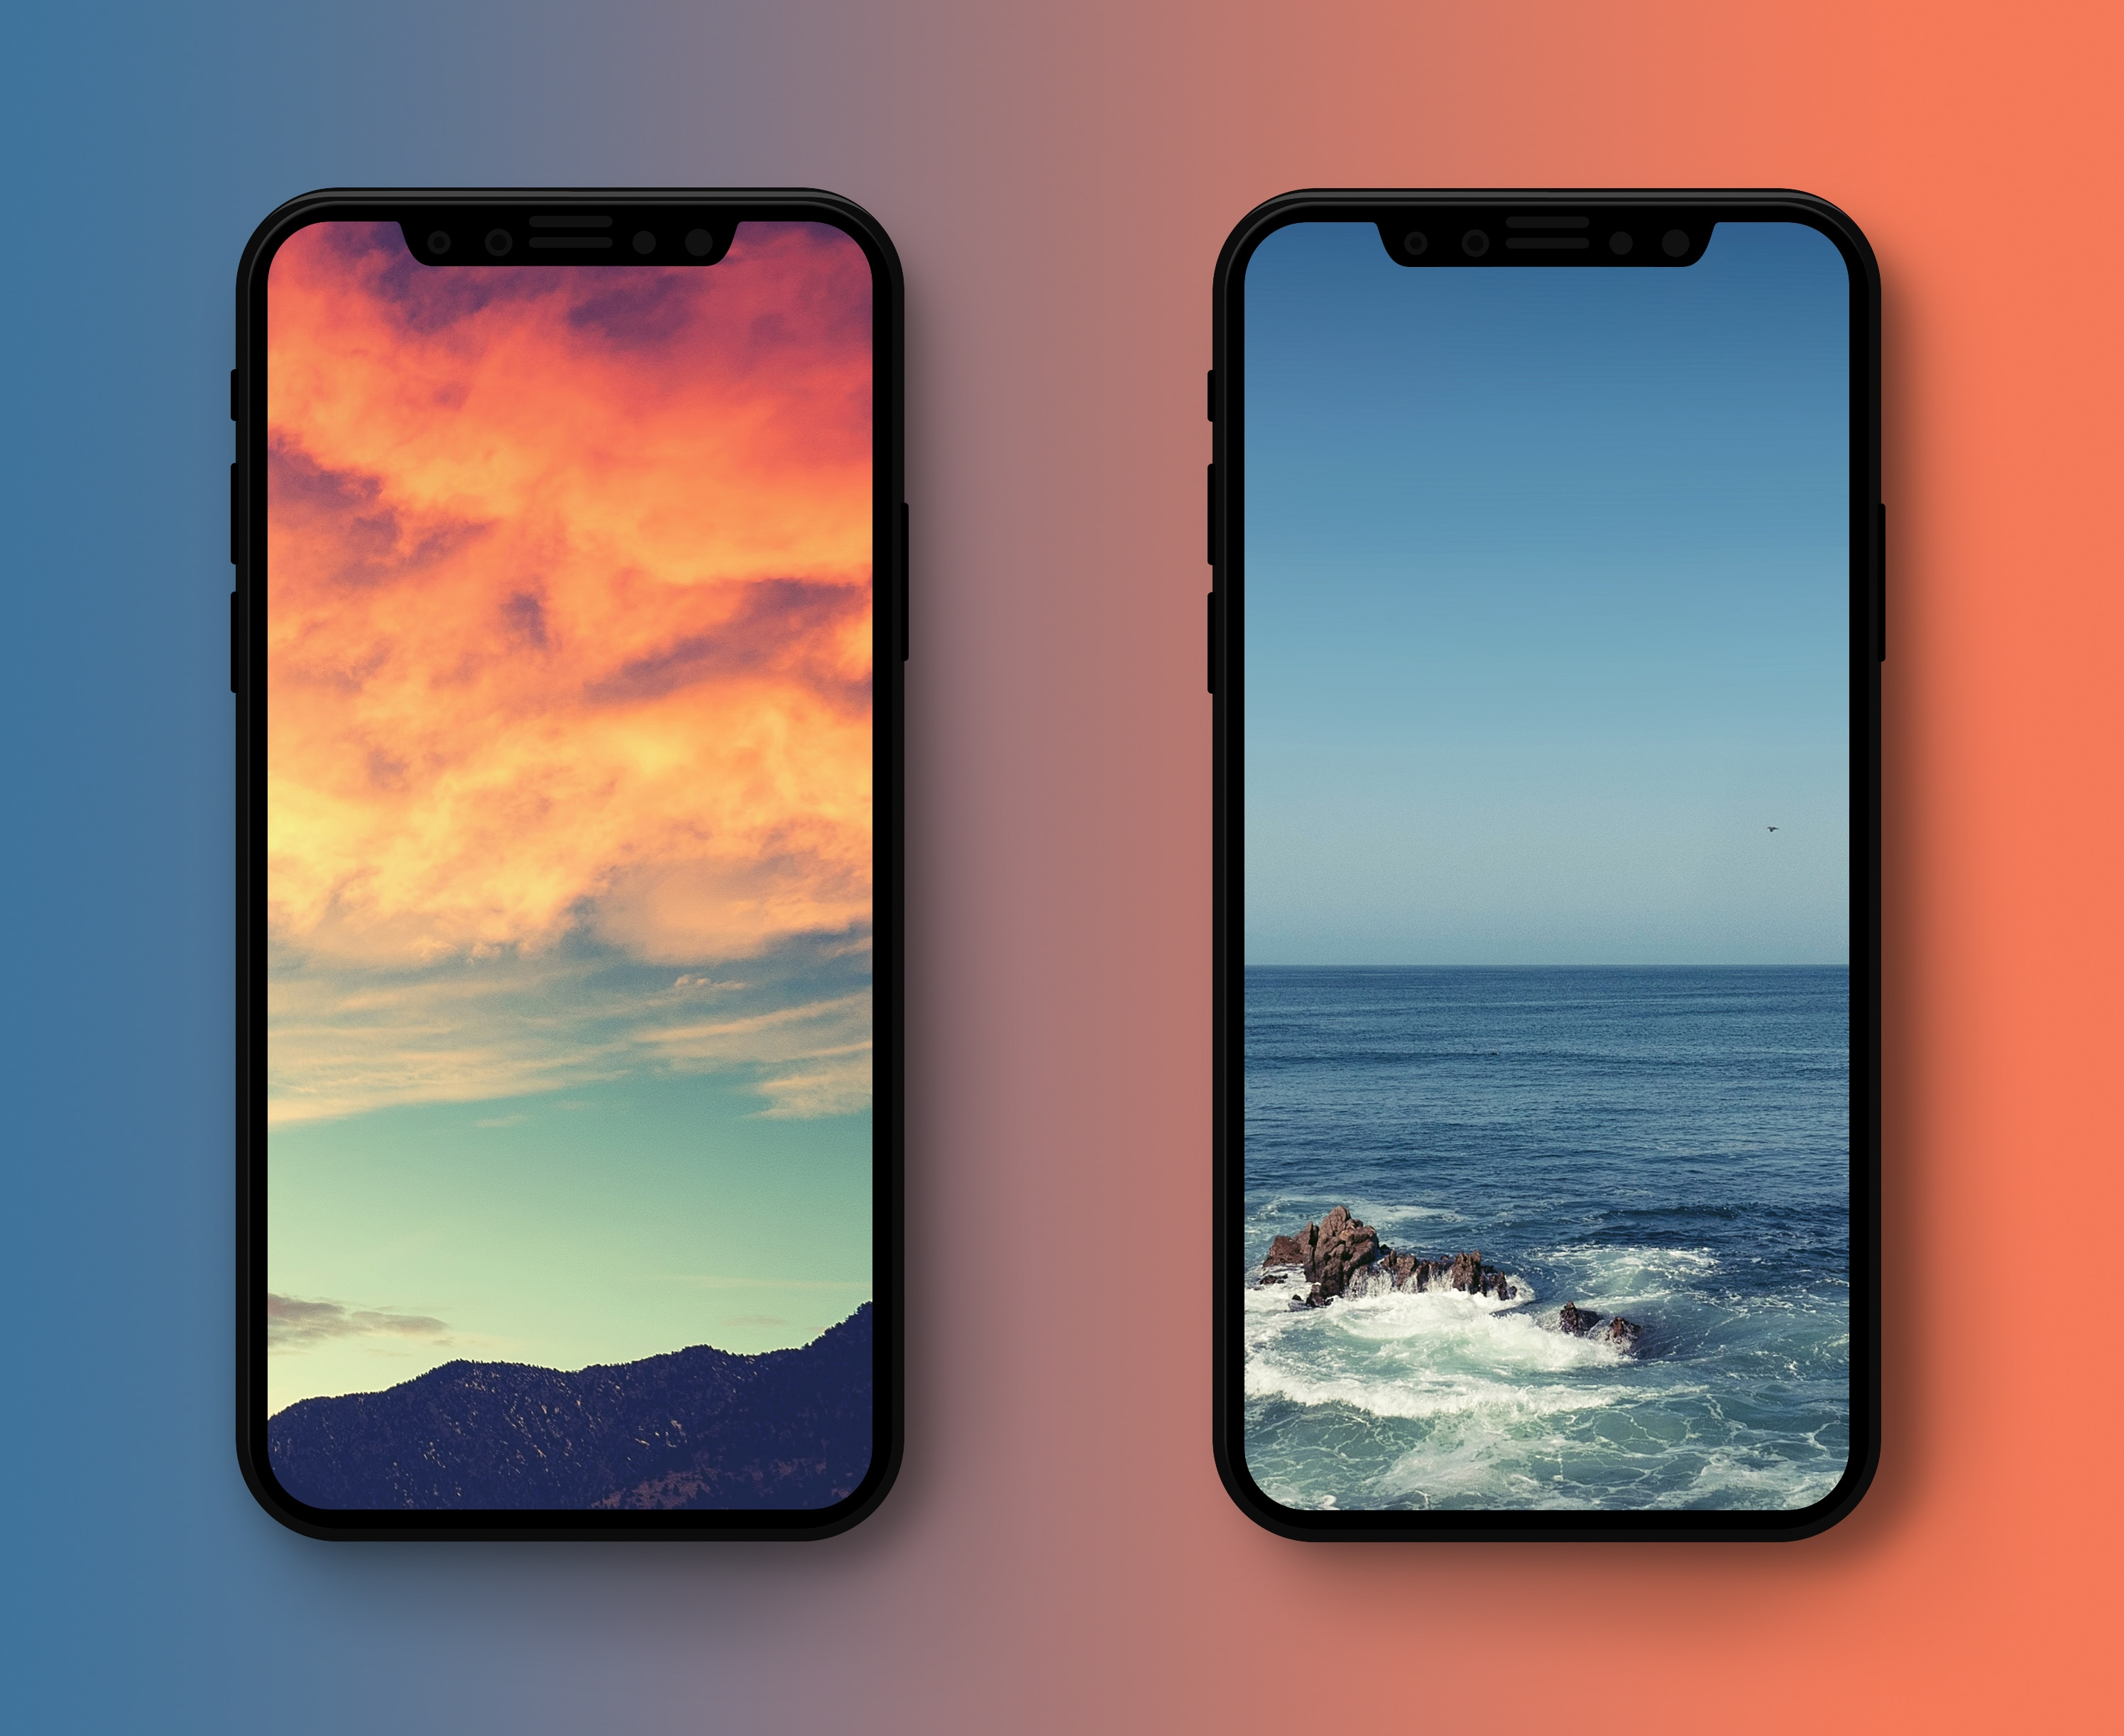 Iphone X Ifixit Wallpaper Video Hands On With Exclusive Iphone X Wallpapers